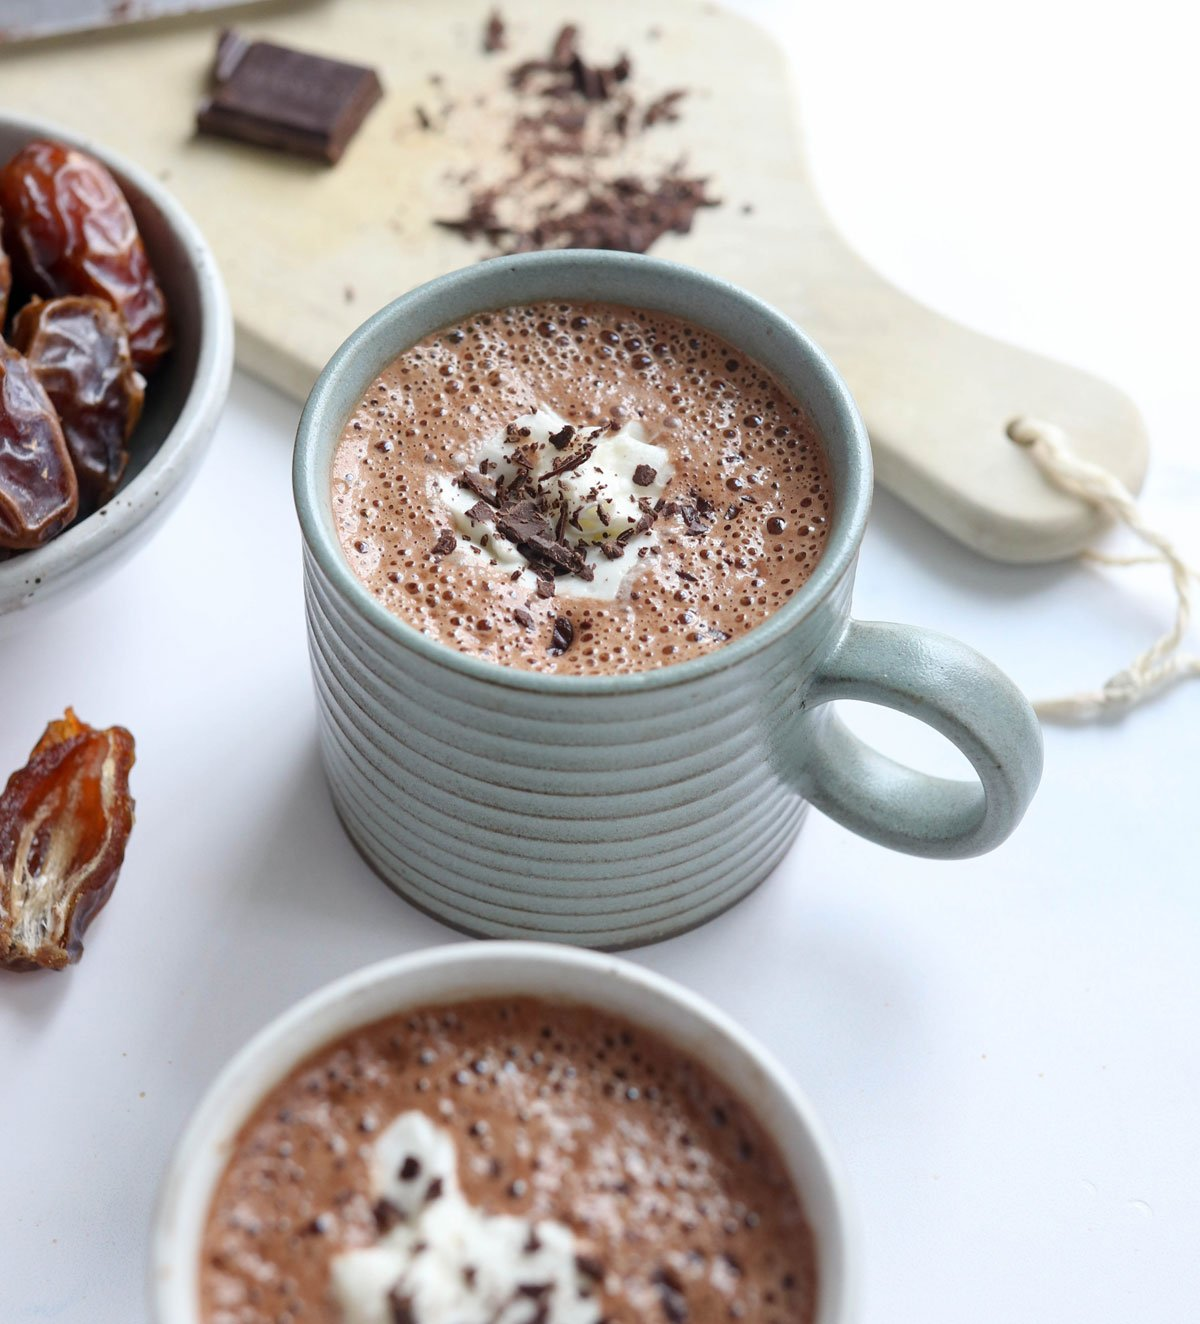 hot chocolate with coconut whipped cream and chocolate shavings